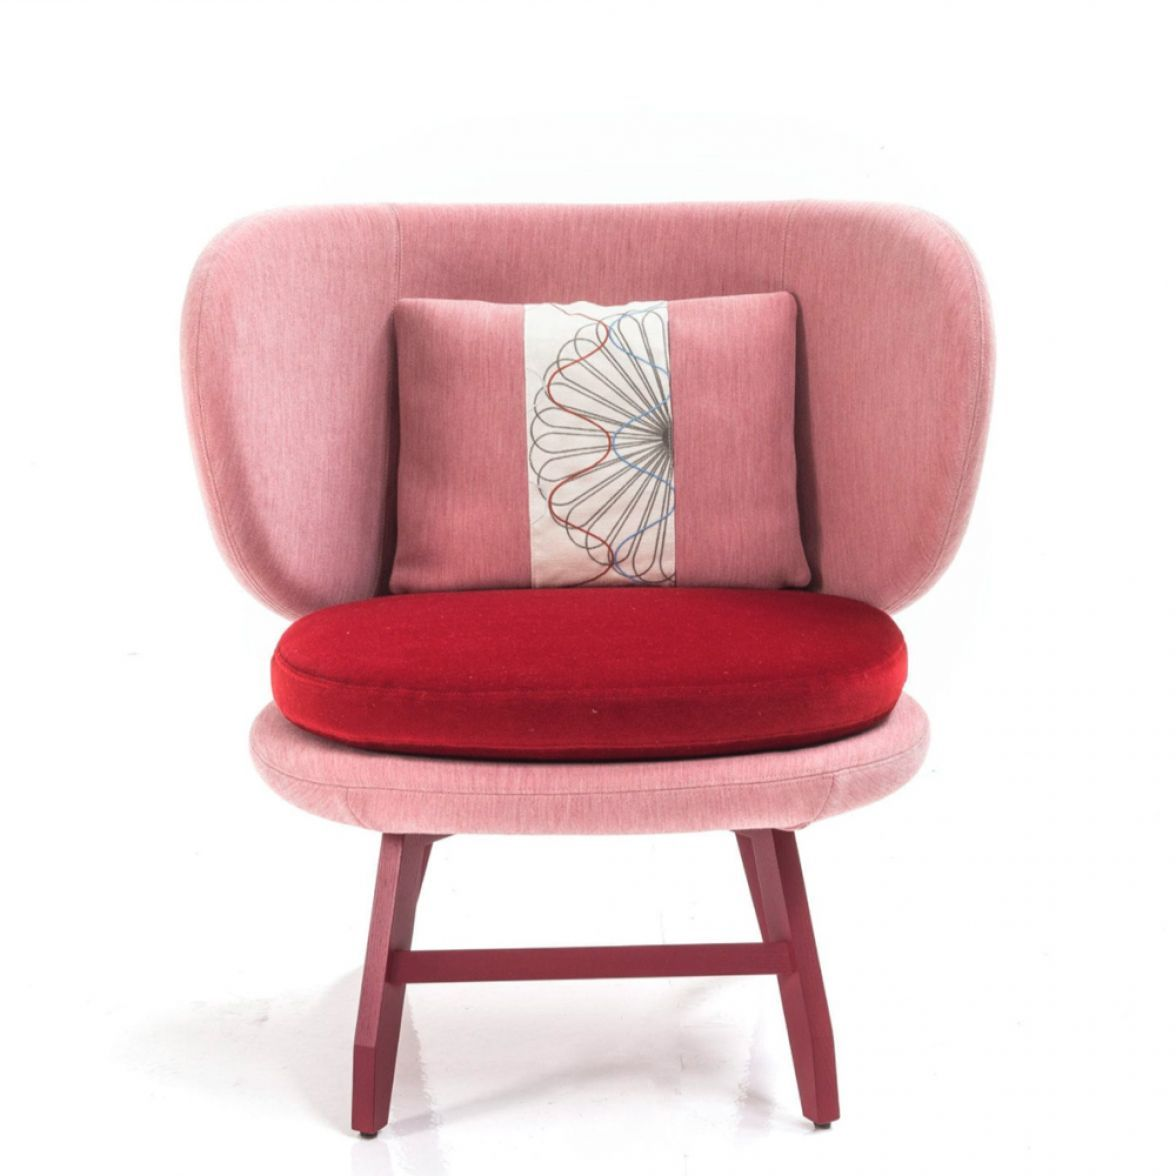 Ariel small armchair фото цена